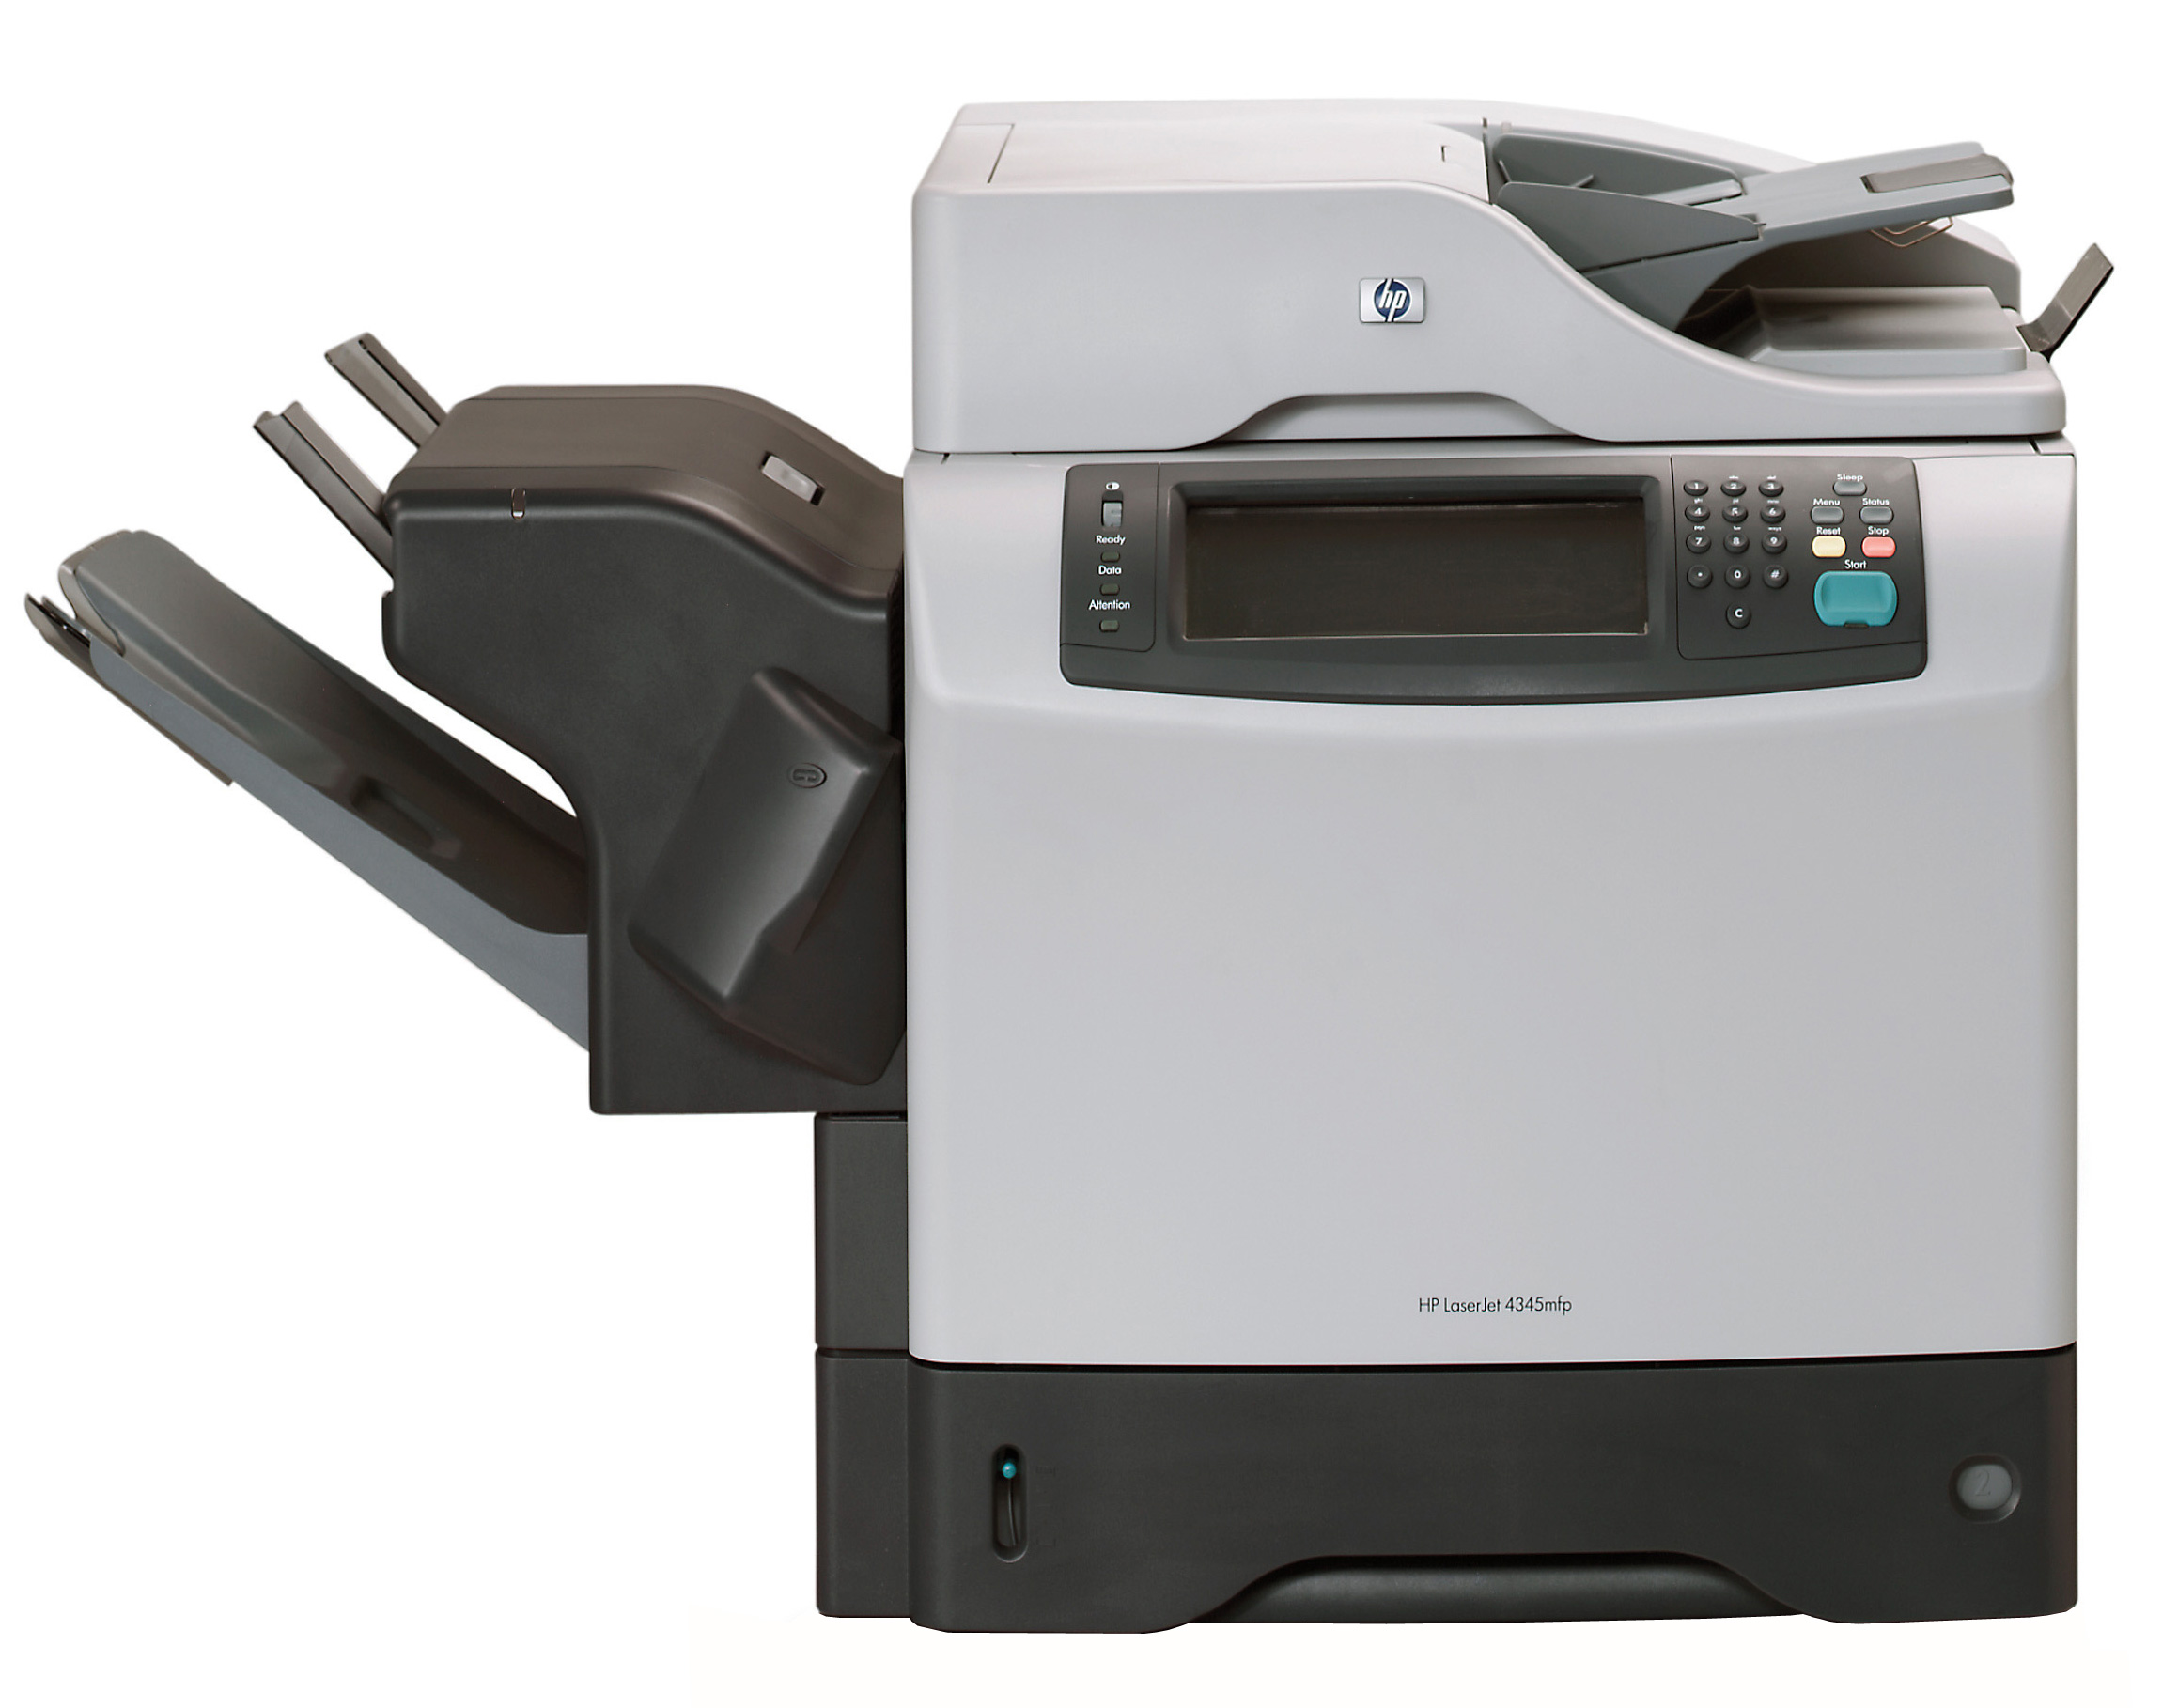 hp laserjet 4345 mfp laser printer reconditioned rh copyfaxes com hp mfp 4345 service manual hp mfp 4345 service manual